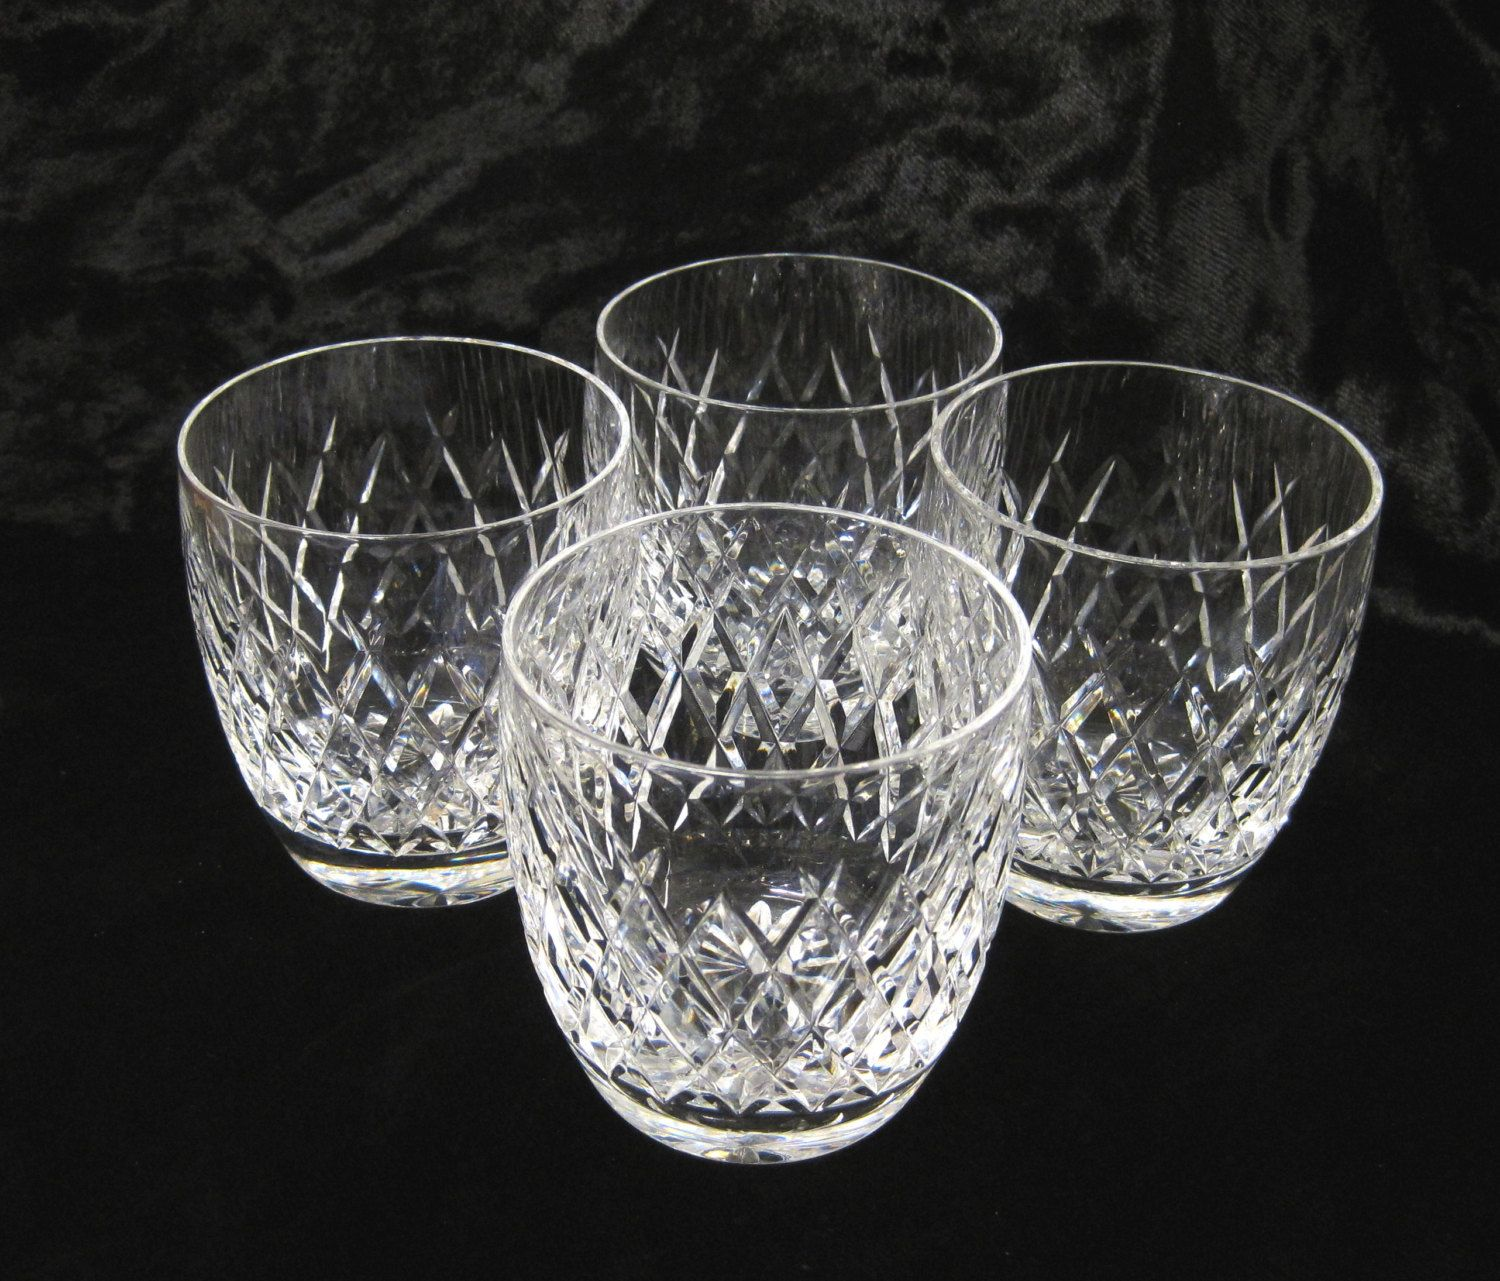 4 Chunky Cut Lead Crystal Whisky Tumblers, 8 oz Scotch Glasses by ...